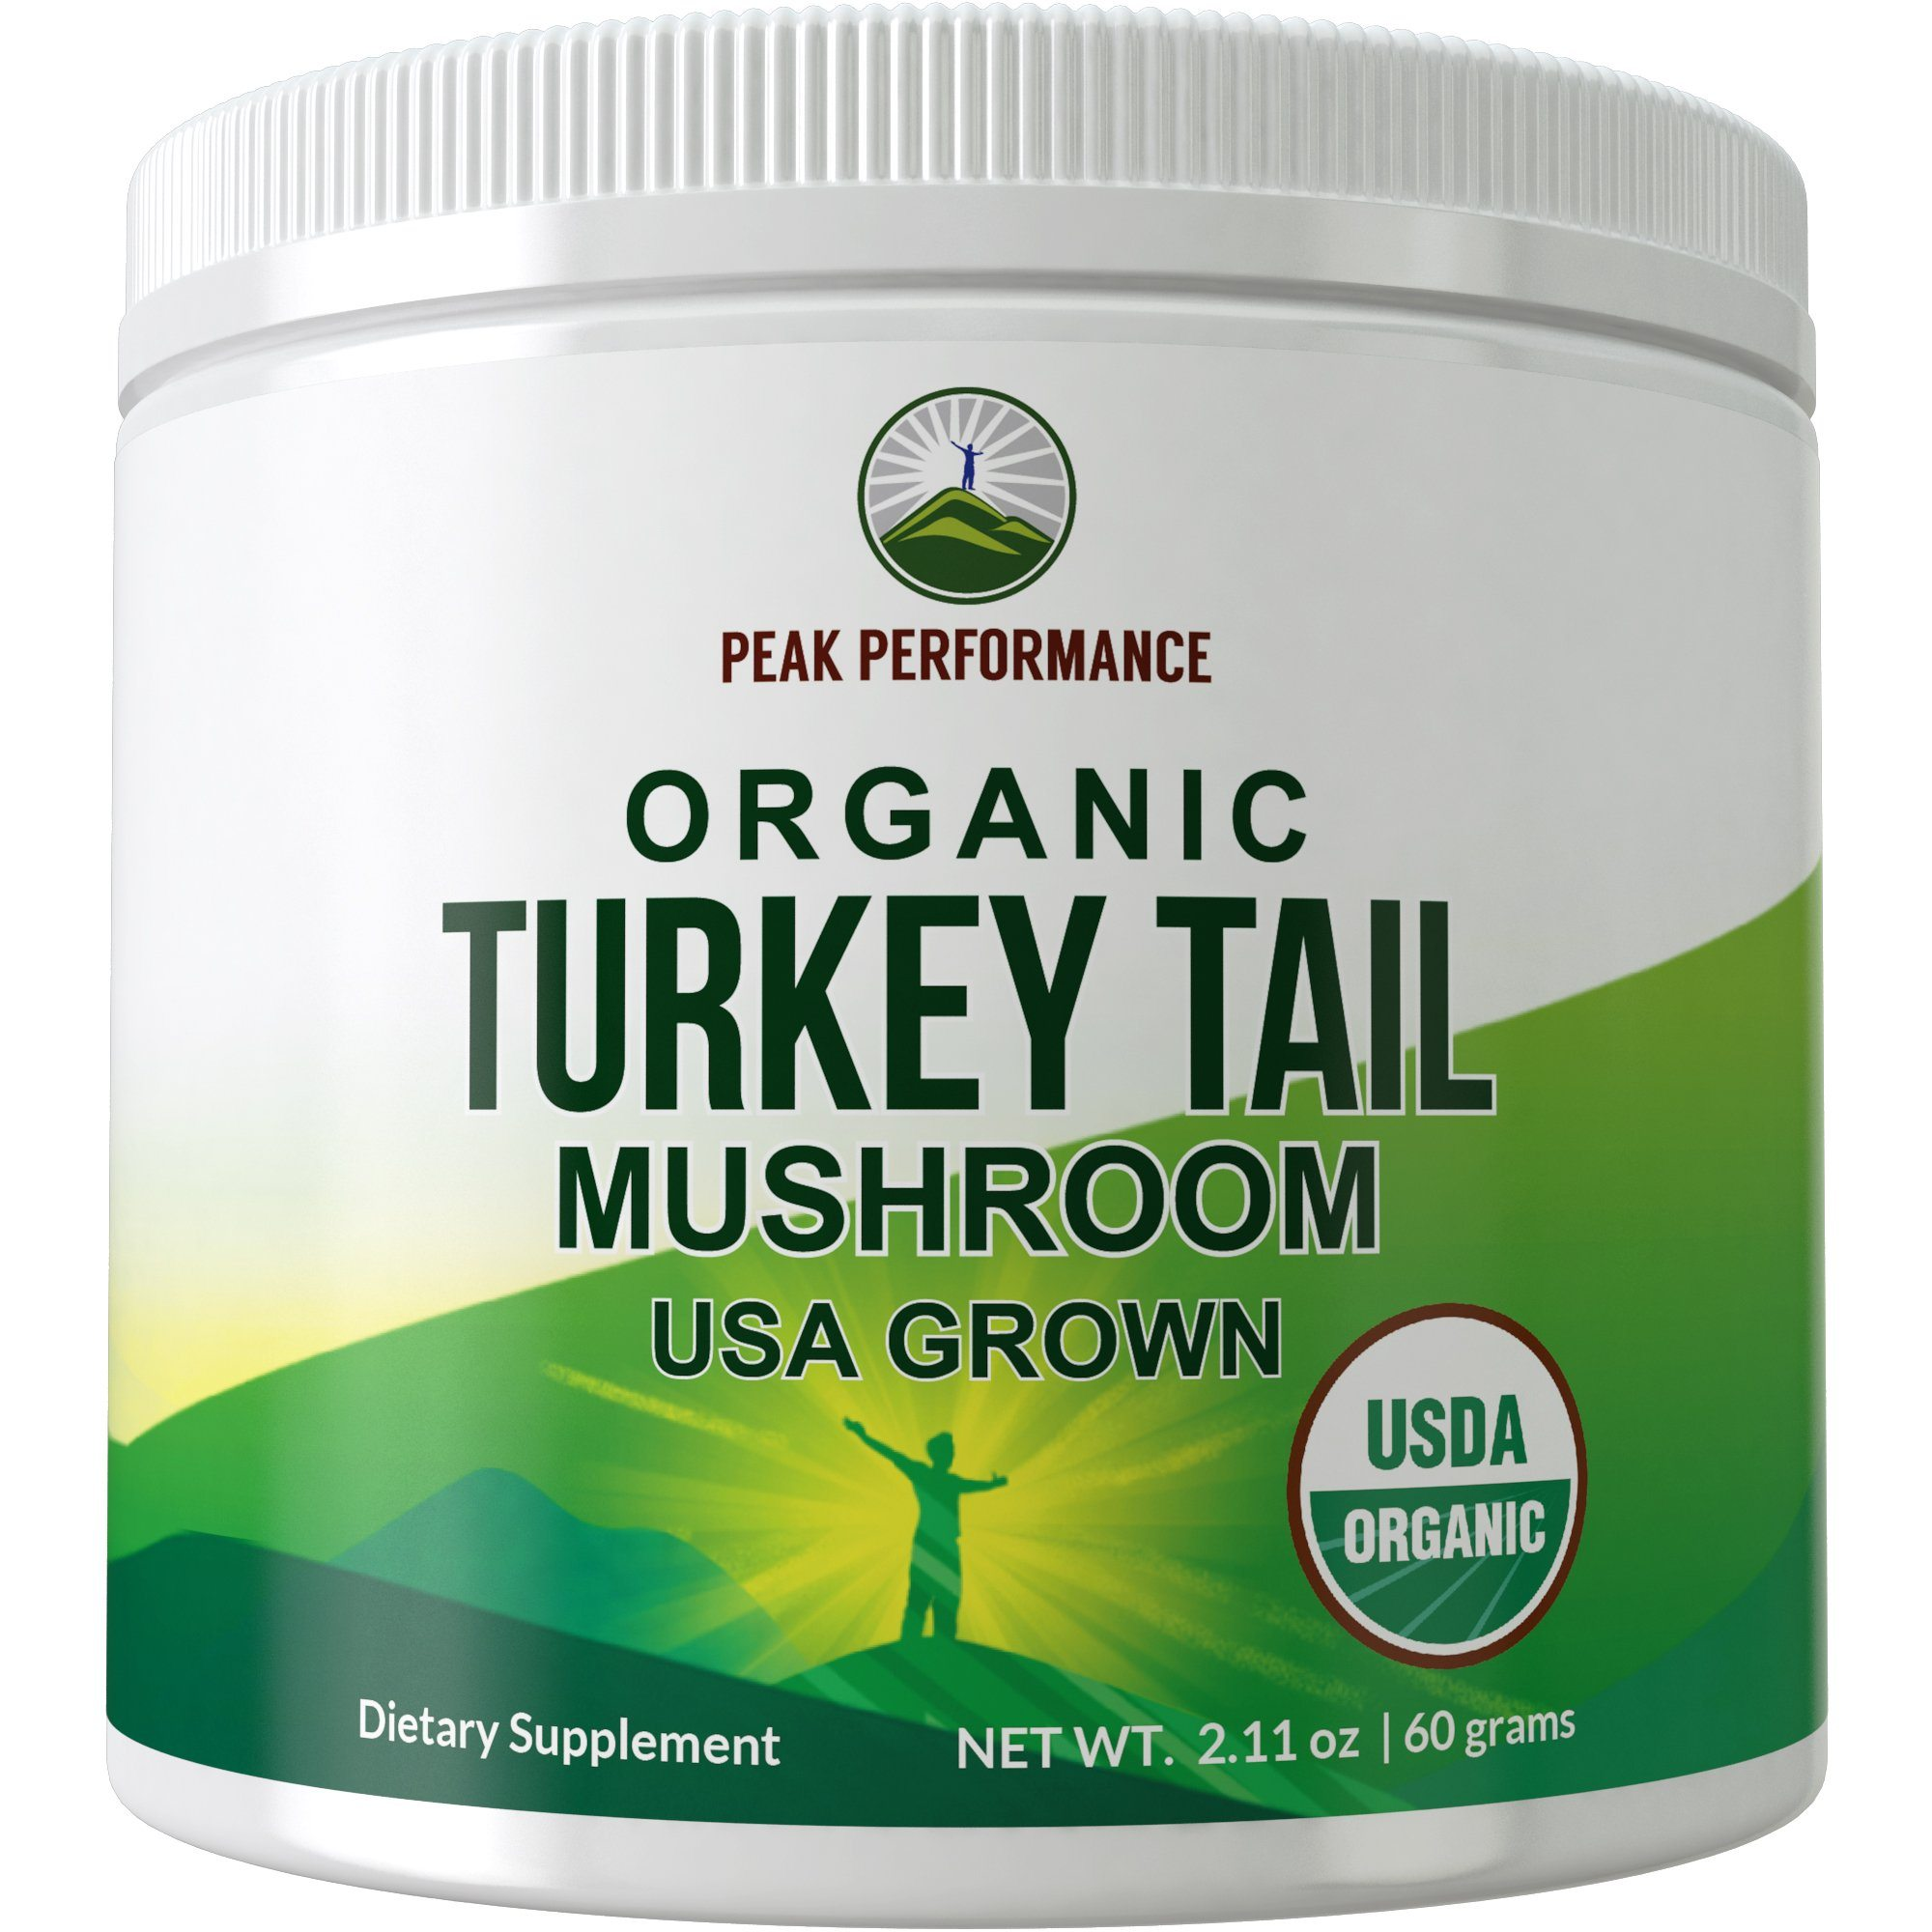 USDA Organic Turkey Tail Mushroom Powder (USA Grown)